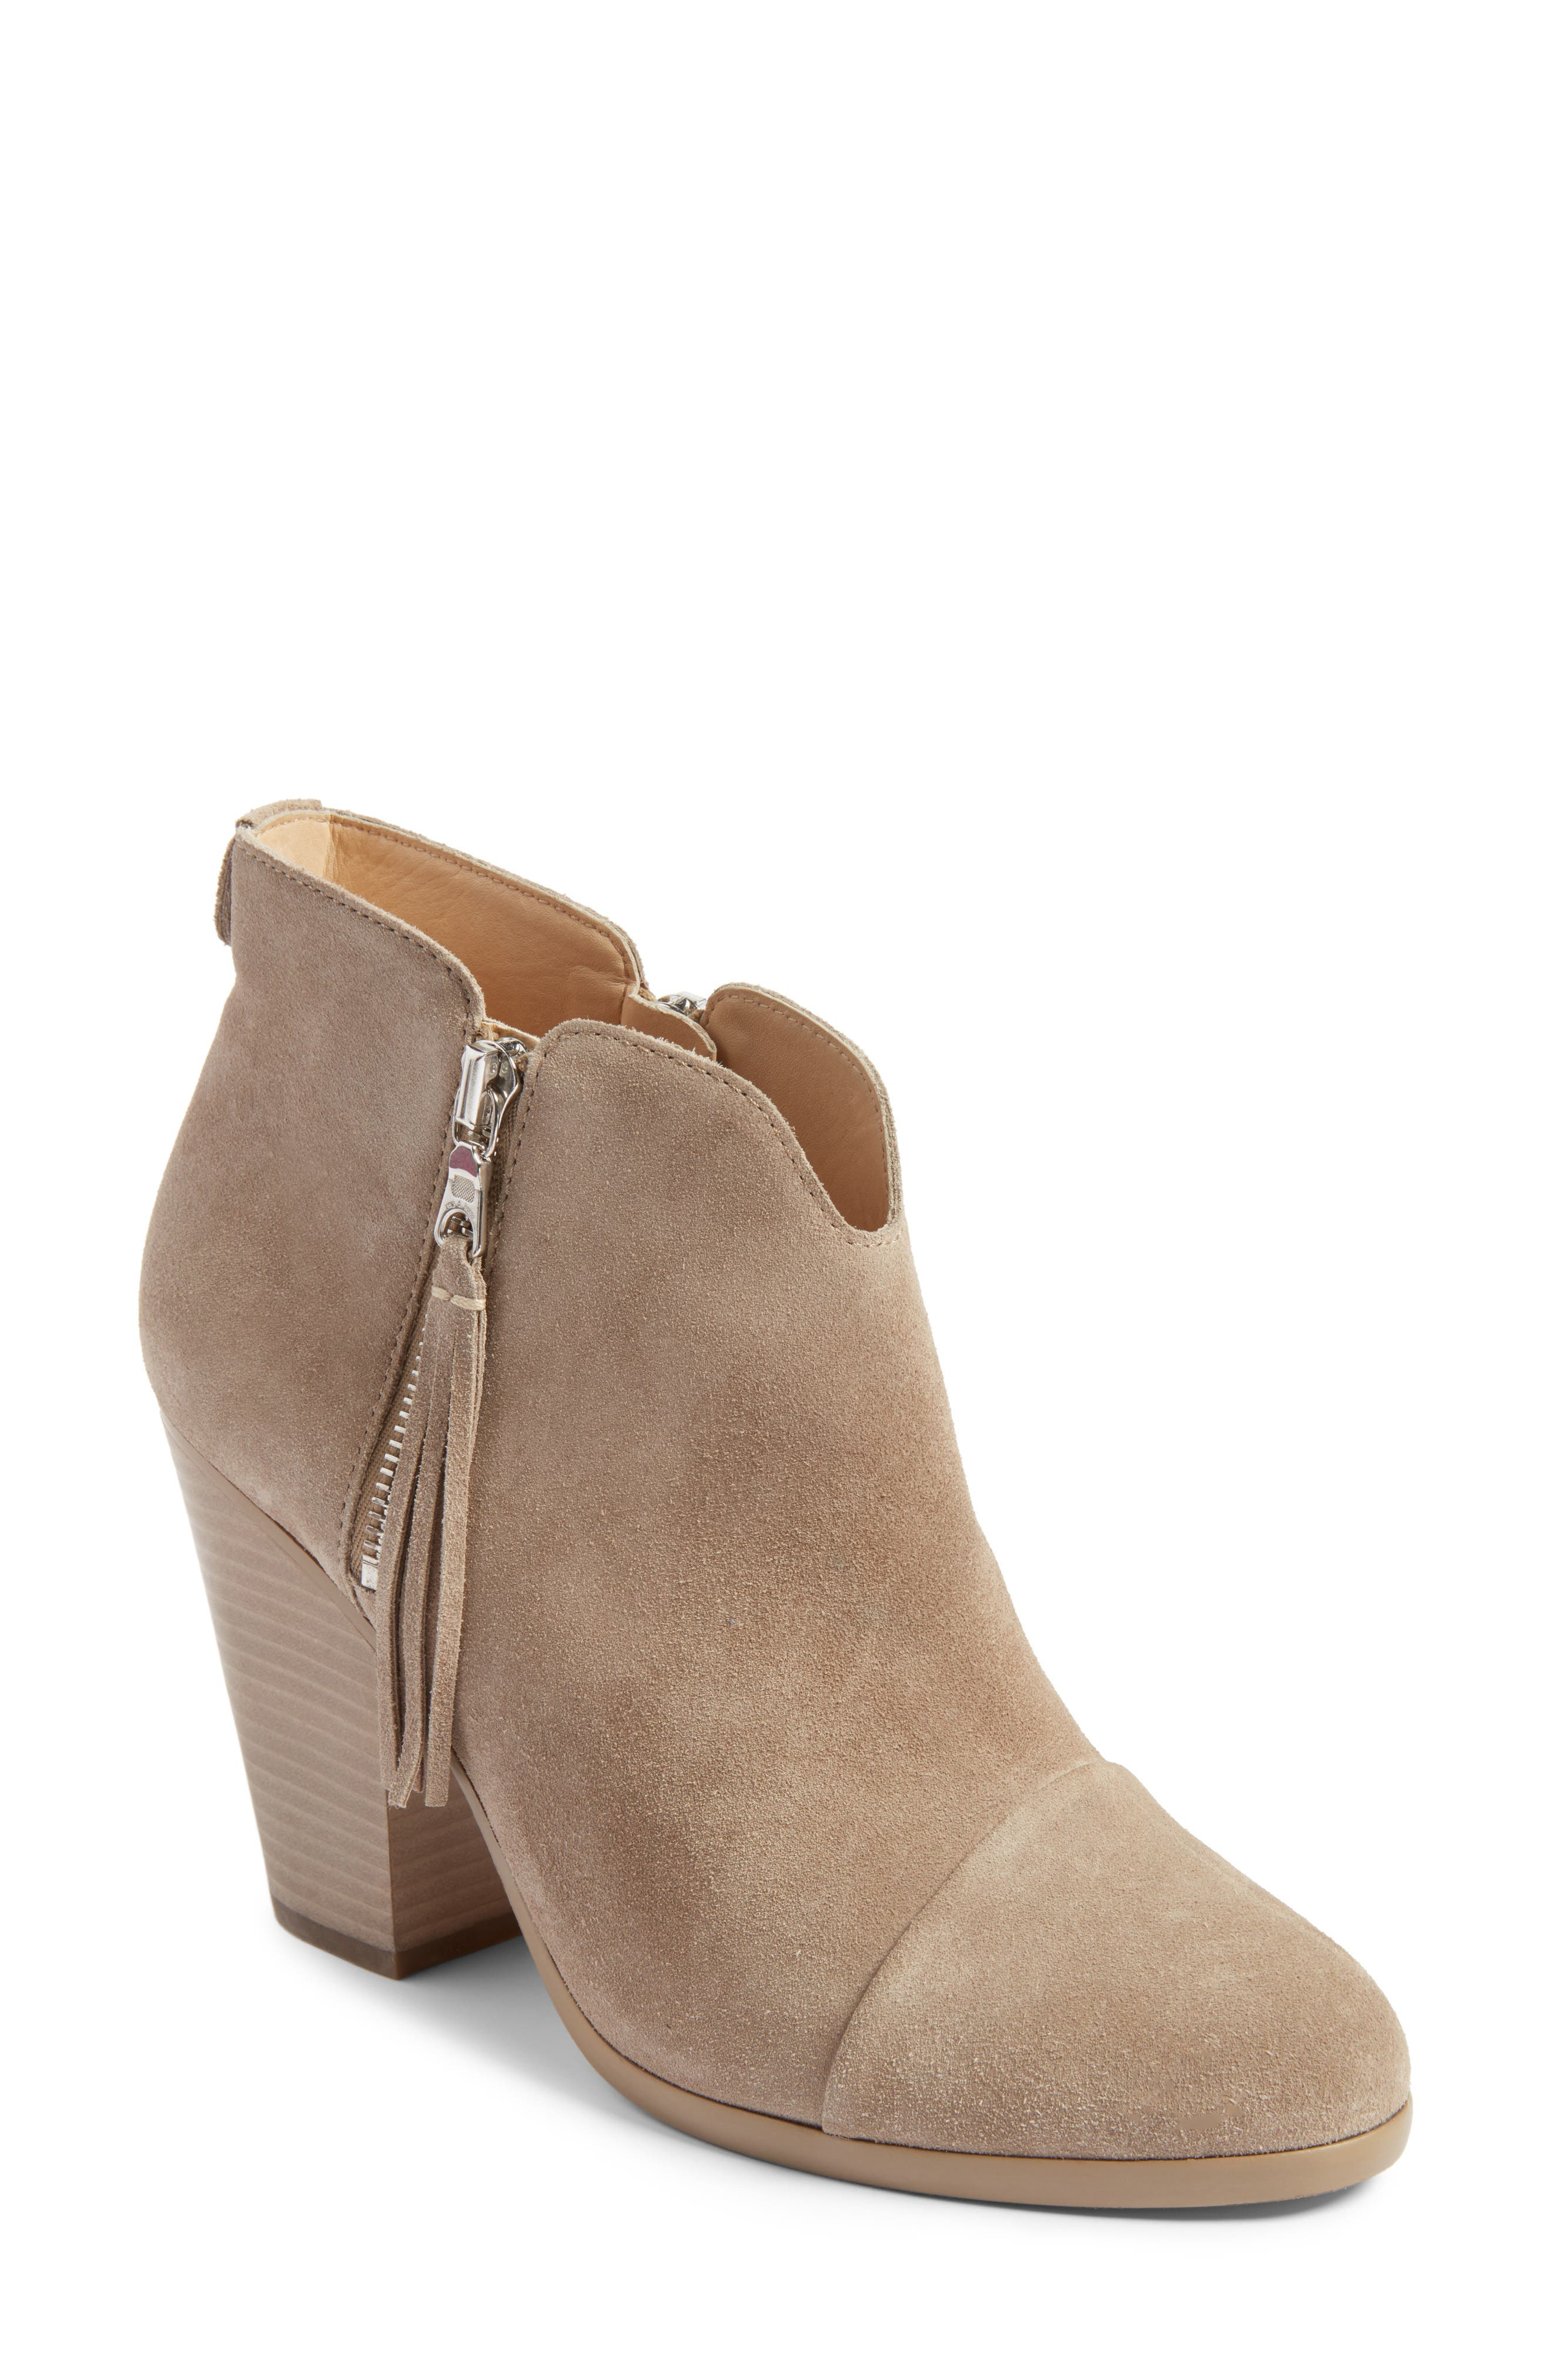 Alternate Image 1 Selected - rag & bone Margot Fringe Cap Toe Bootie (Women)